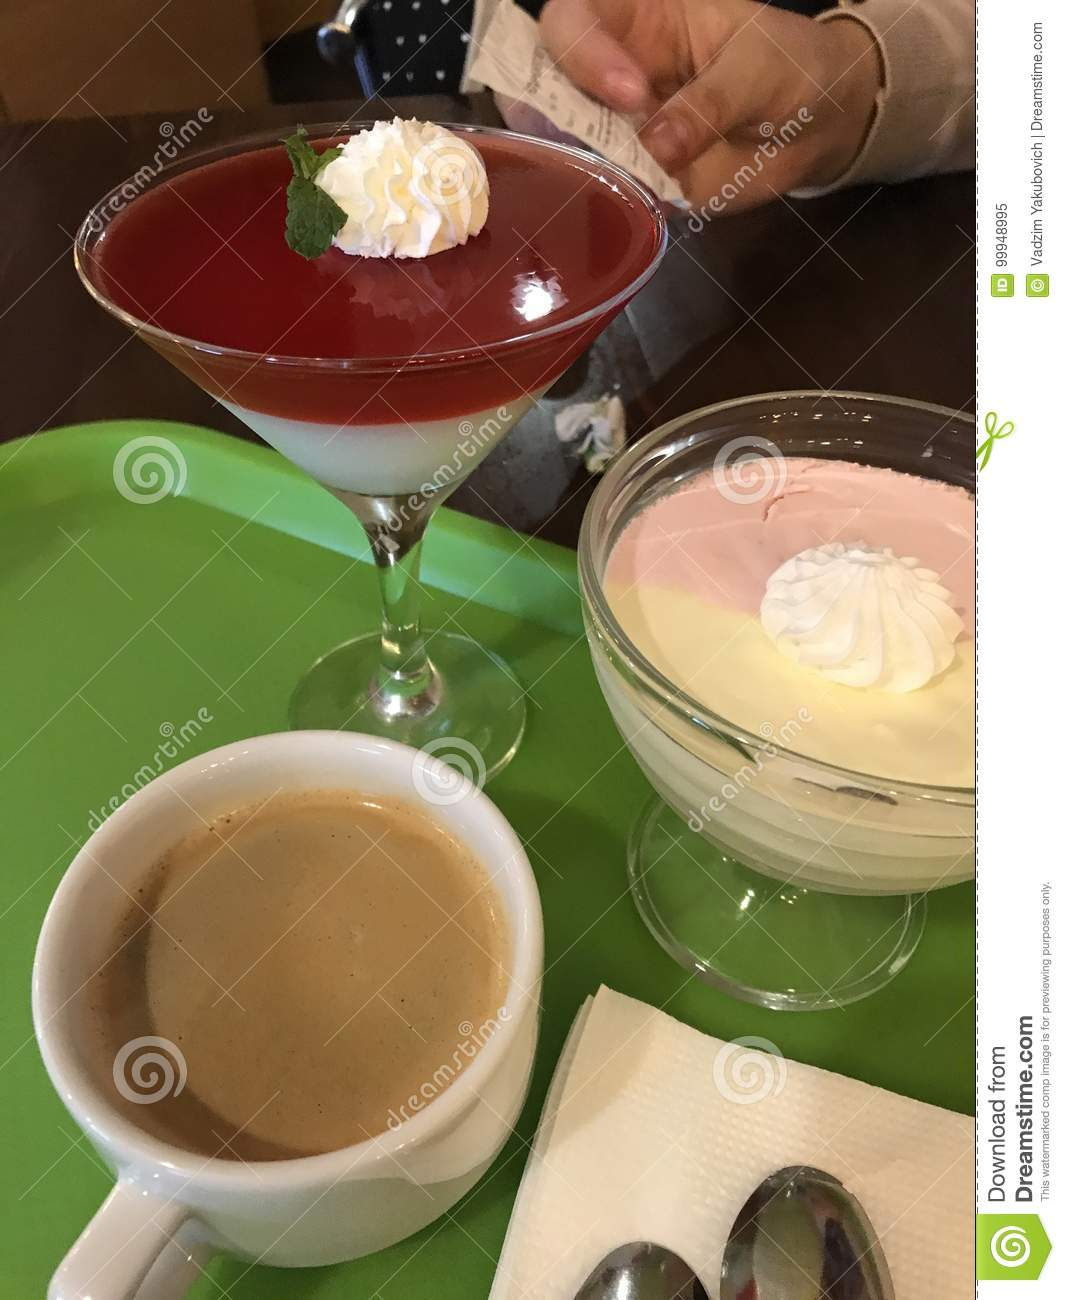 jelly, desserts and coffee Cup are on the Green tray.